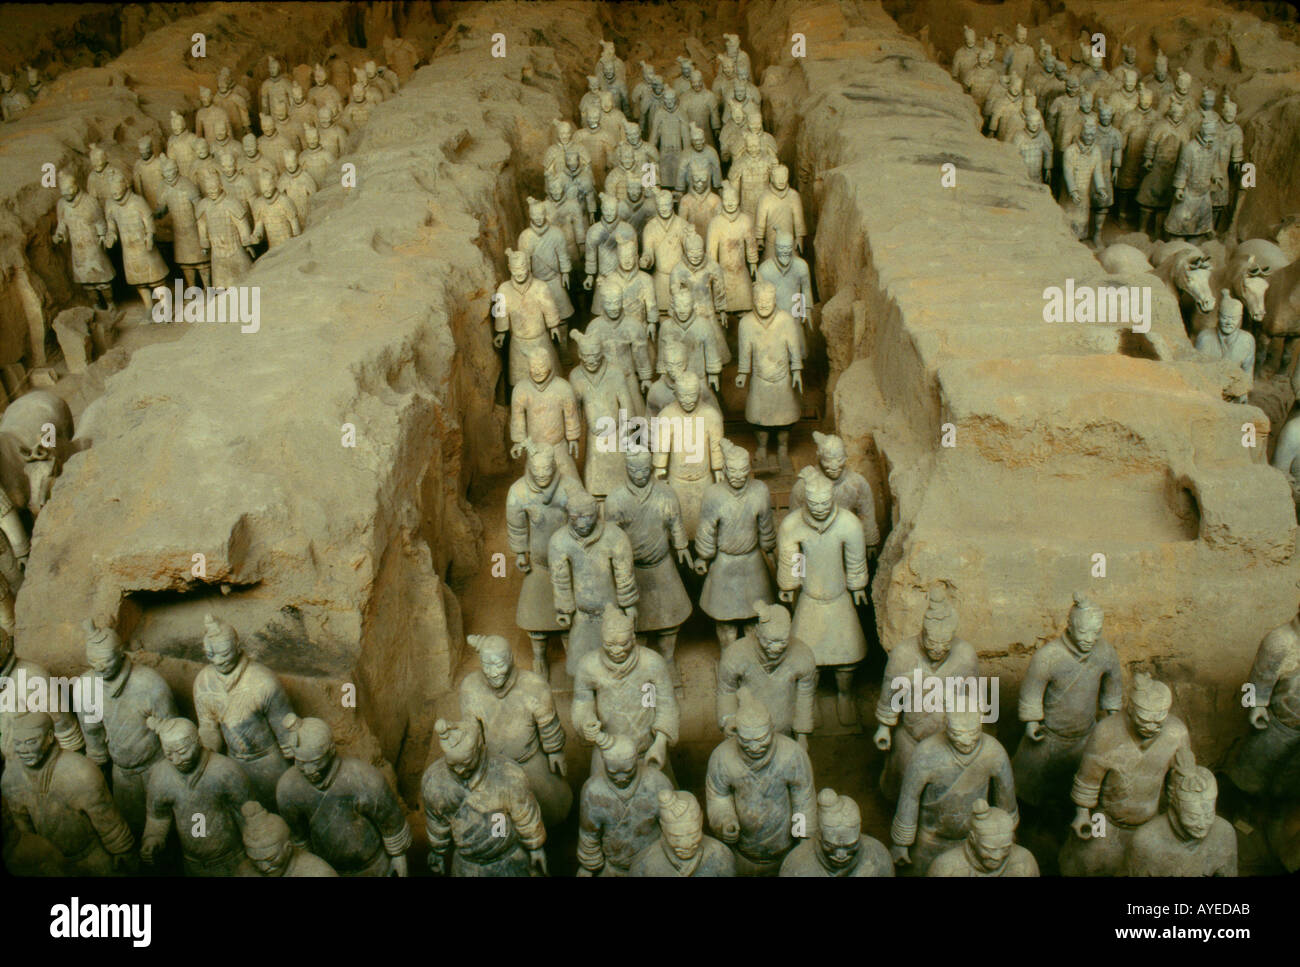 the tomb of shihuangdi View homework help - tomb of shihuangdi from history 102 at university of phoenix tomb of shihuangdi students name: professors name: course: date: it is said that the emperor is buried deep within a.